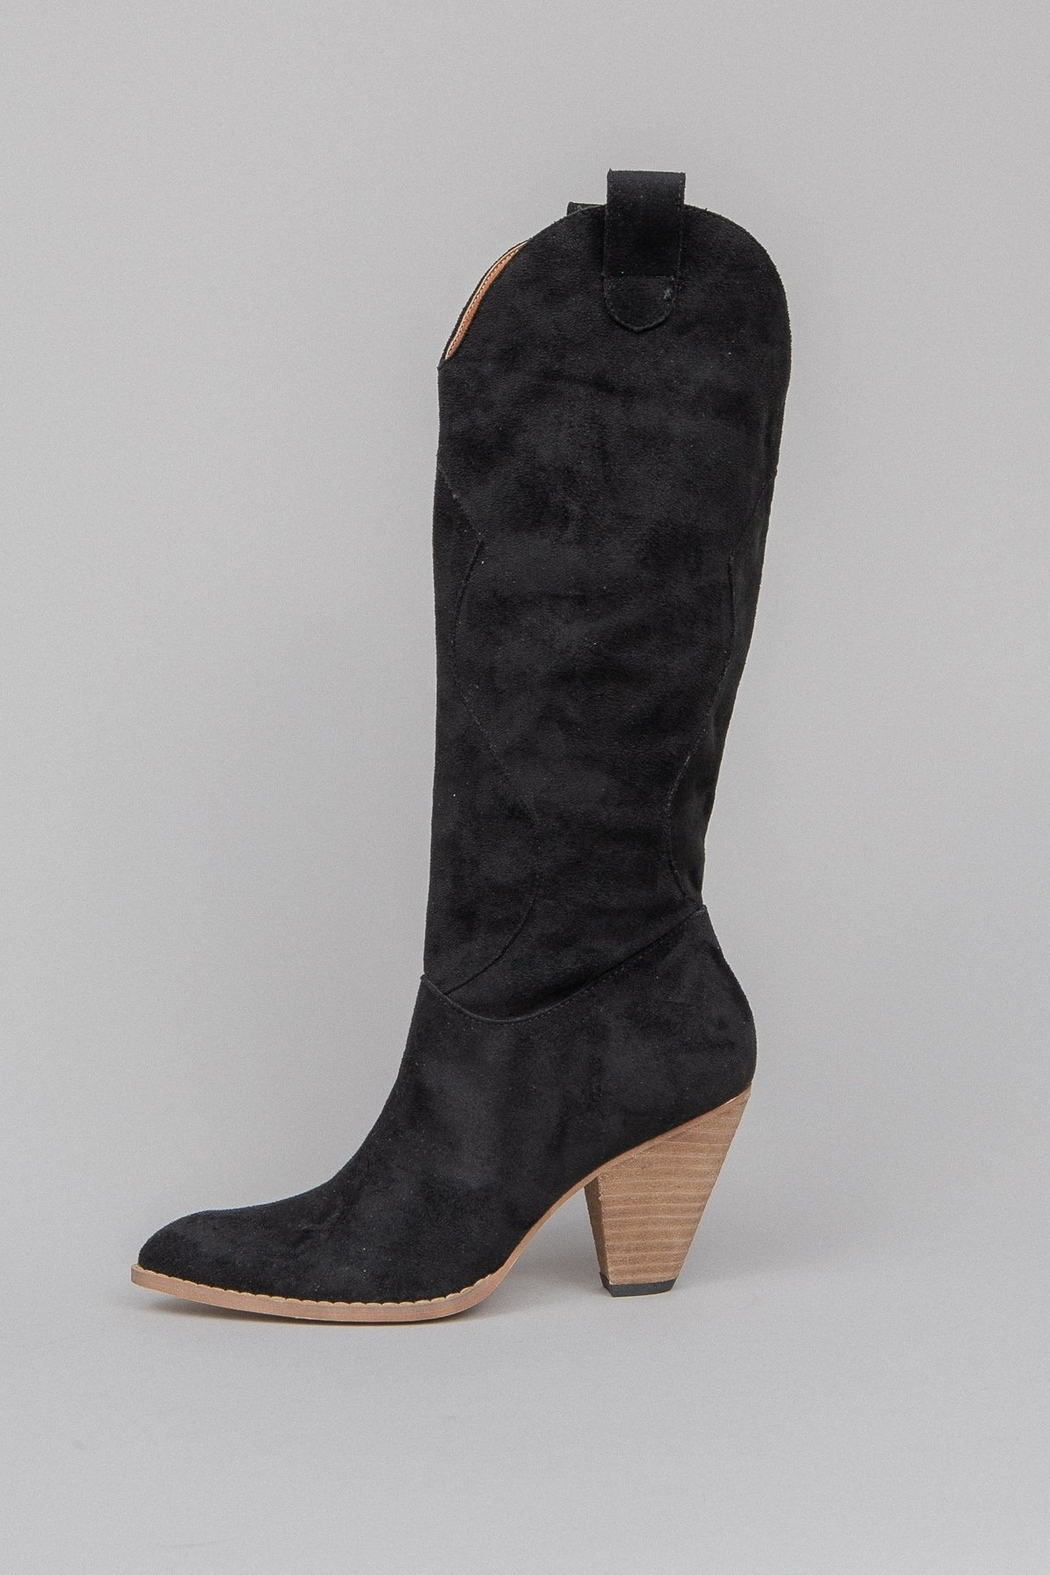 miracle miles  Bohemian/Western Knee-High Boot - Main Image